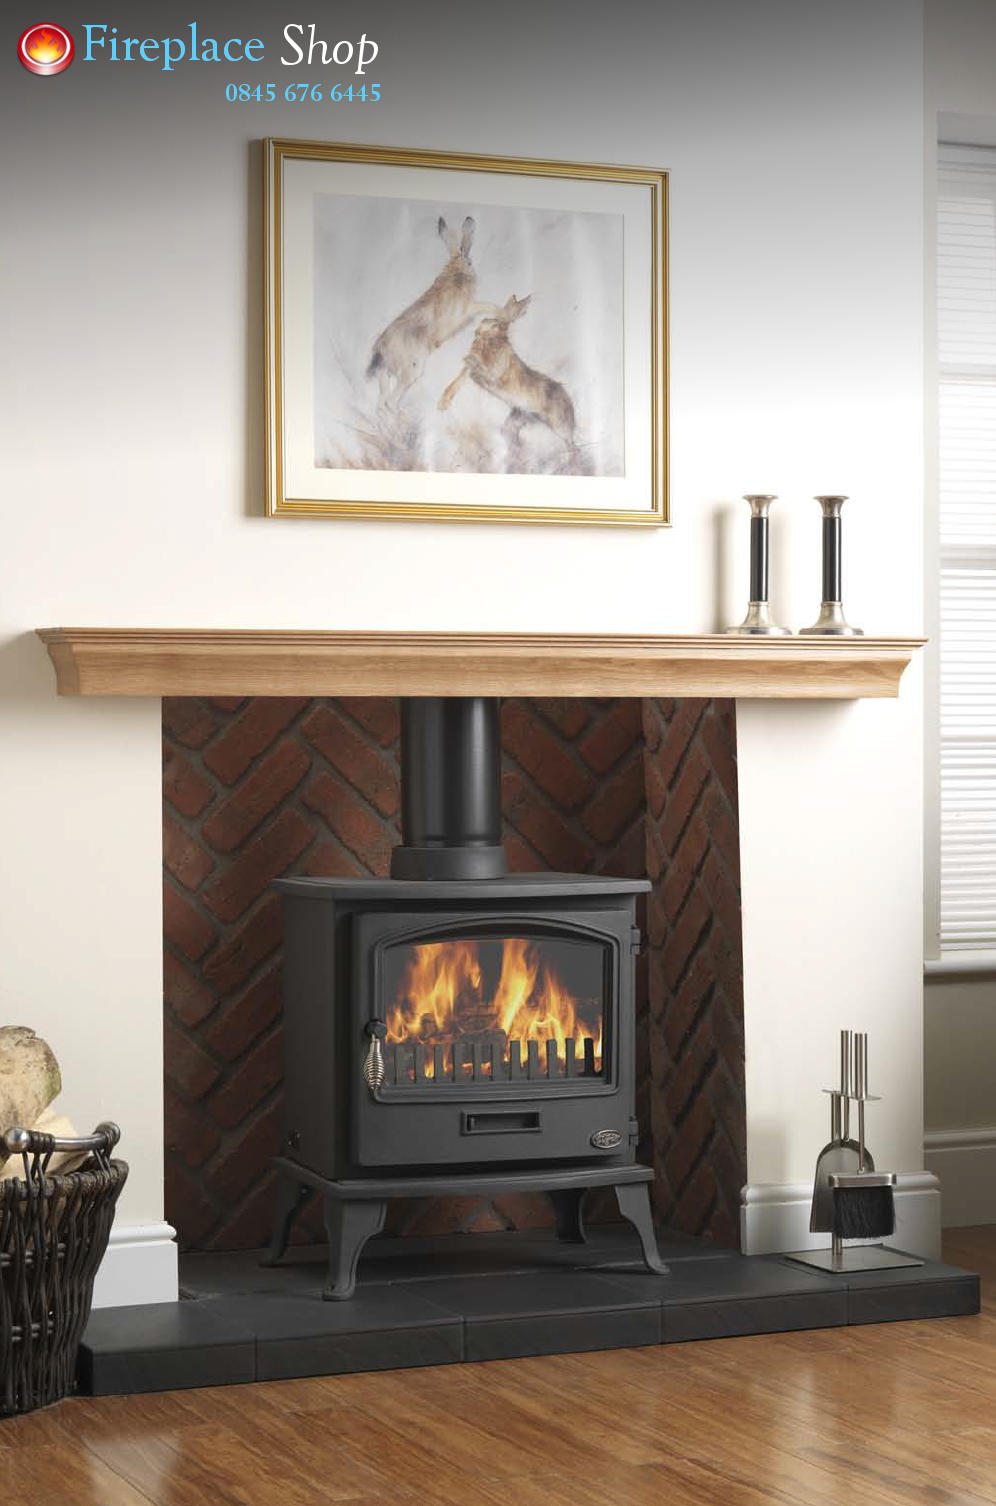 Multi fuel or wood burning stove - Standard Sized Living Room Would Usually Need Around 5 7 Kilowatts